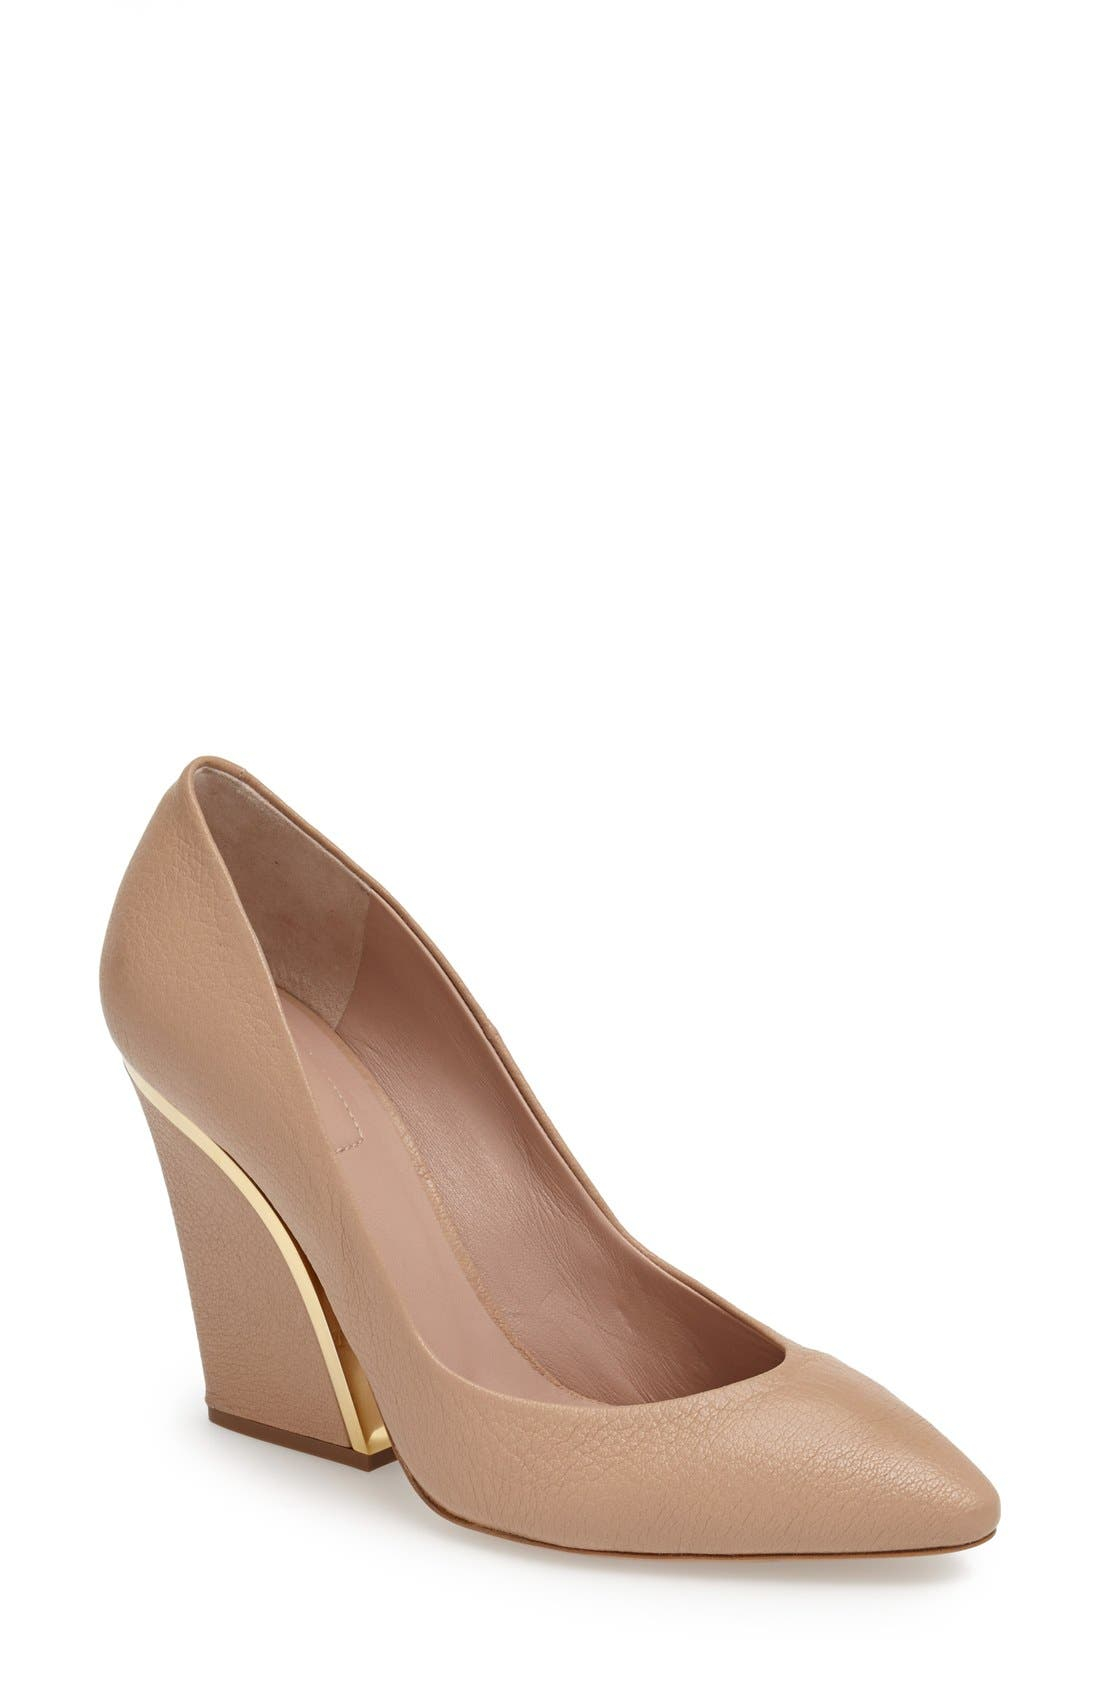 Main Image - Chloé 'Beckie' Pointy Toe Pump (Women)